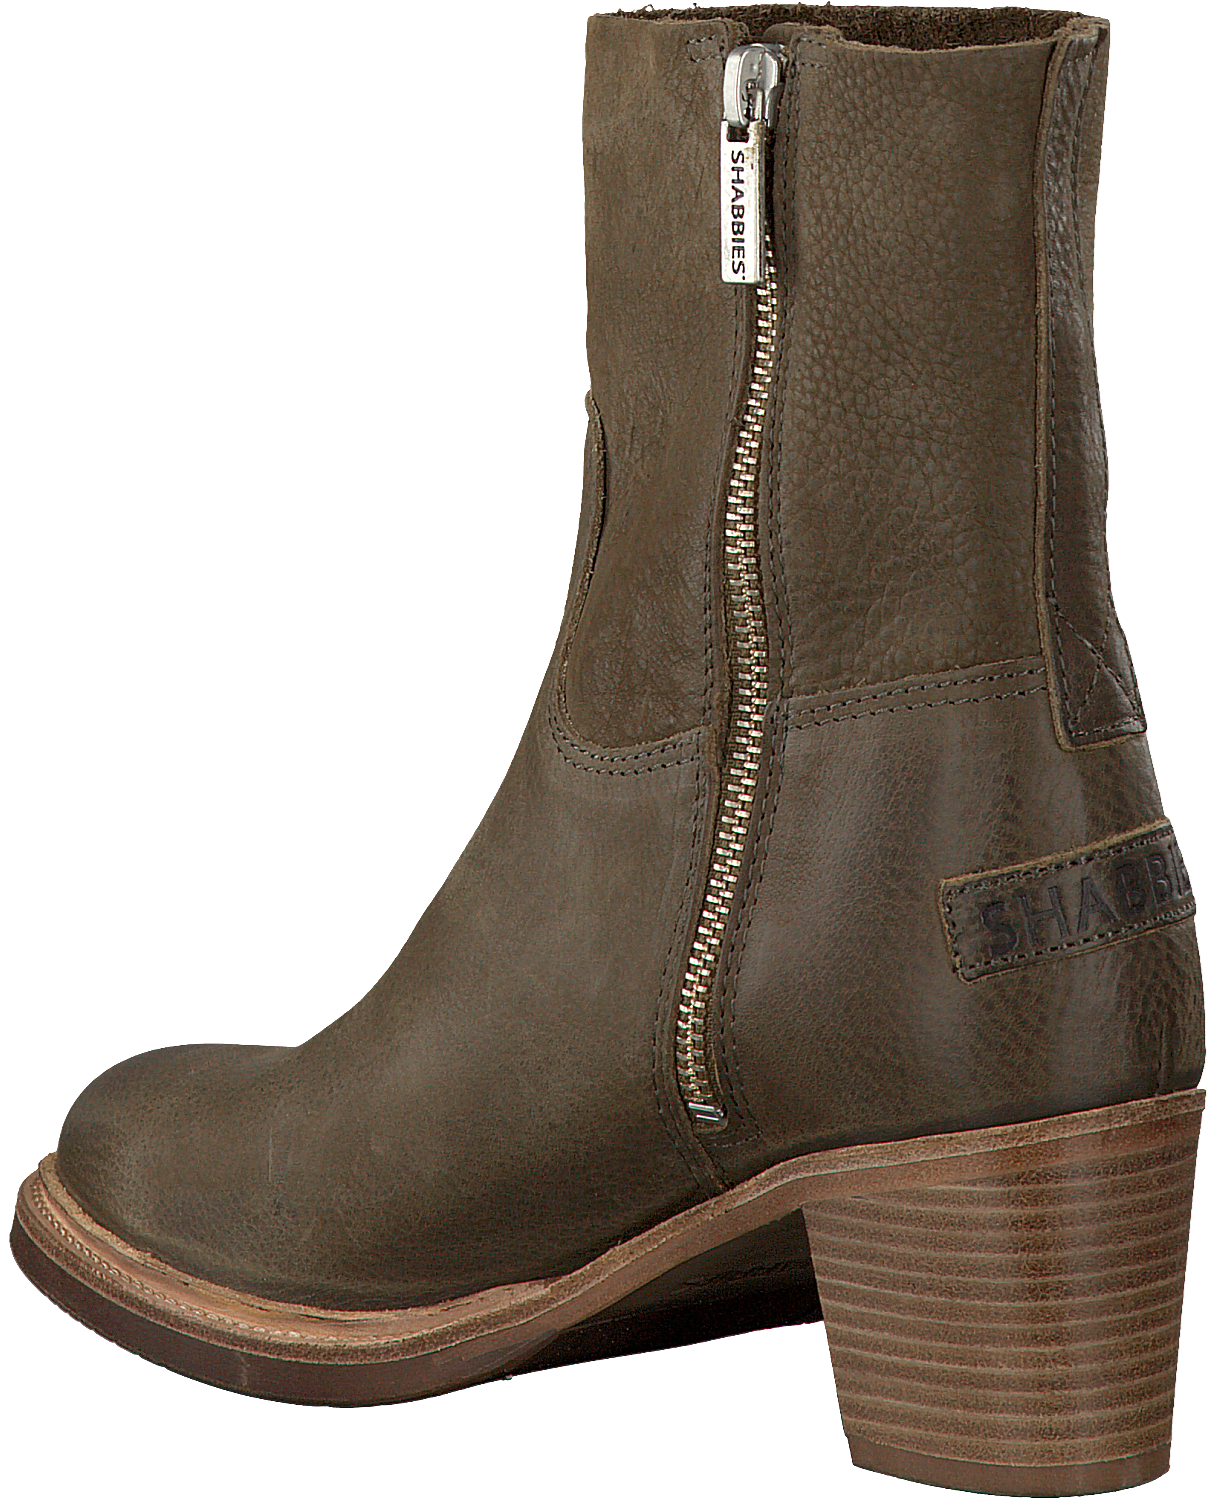 Shabbies Cheville 182020062 Taupe xetwobInD